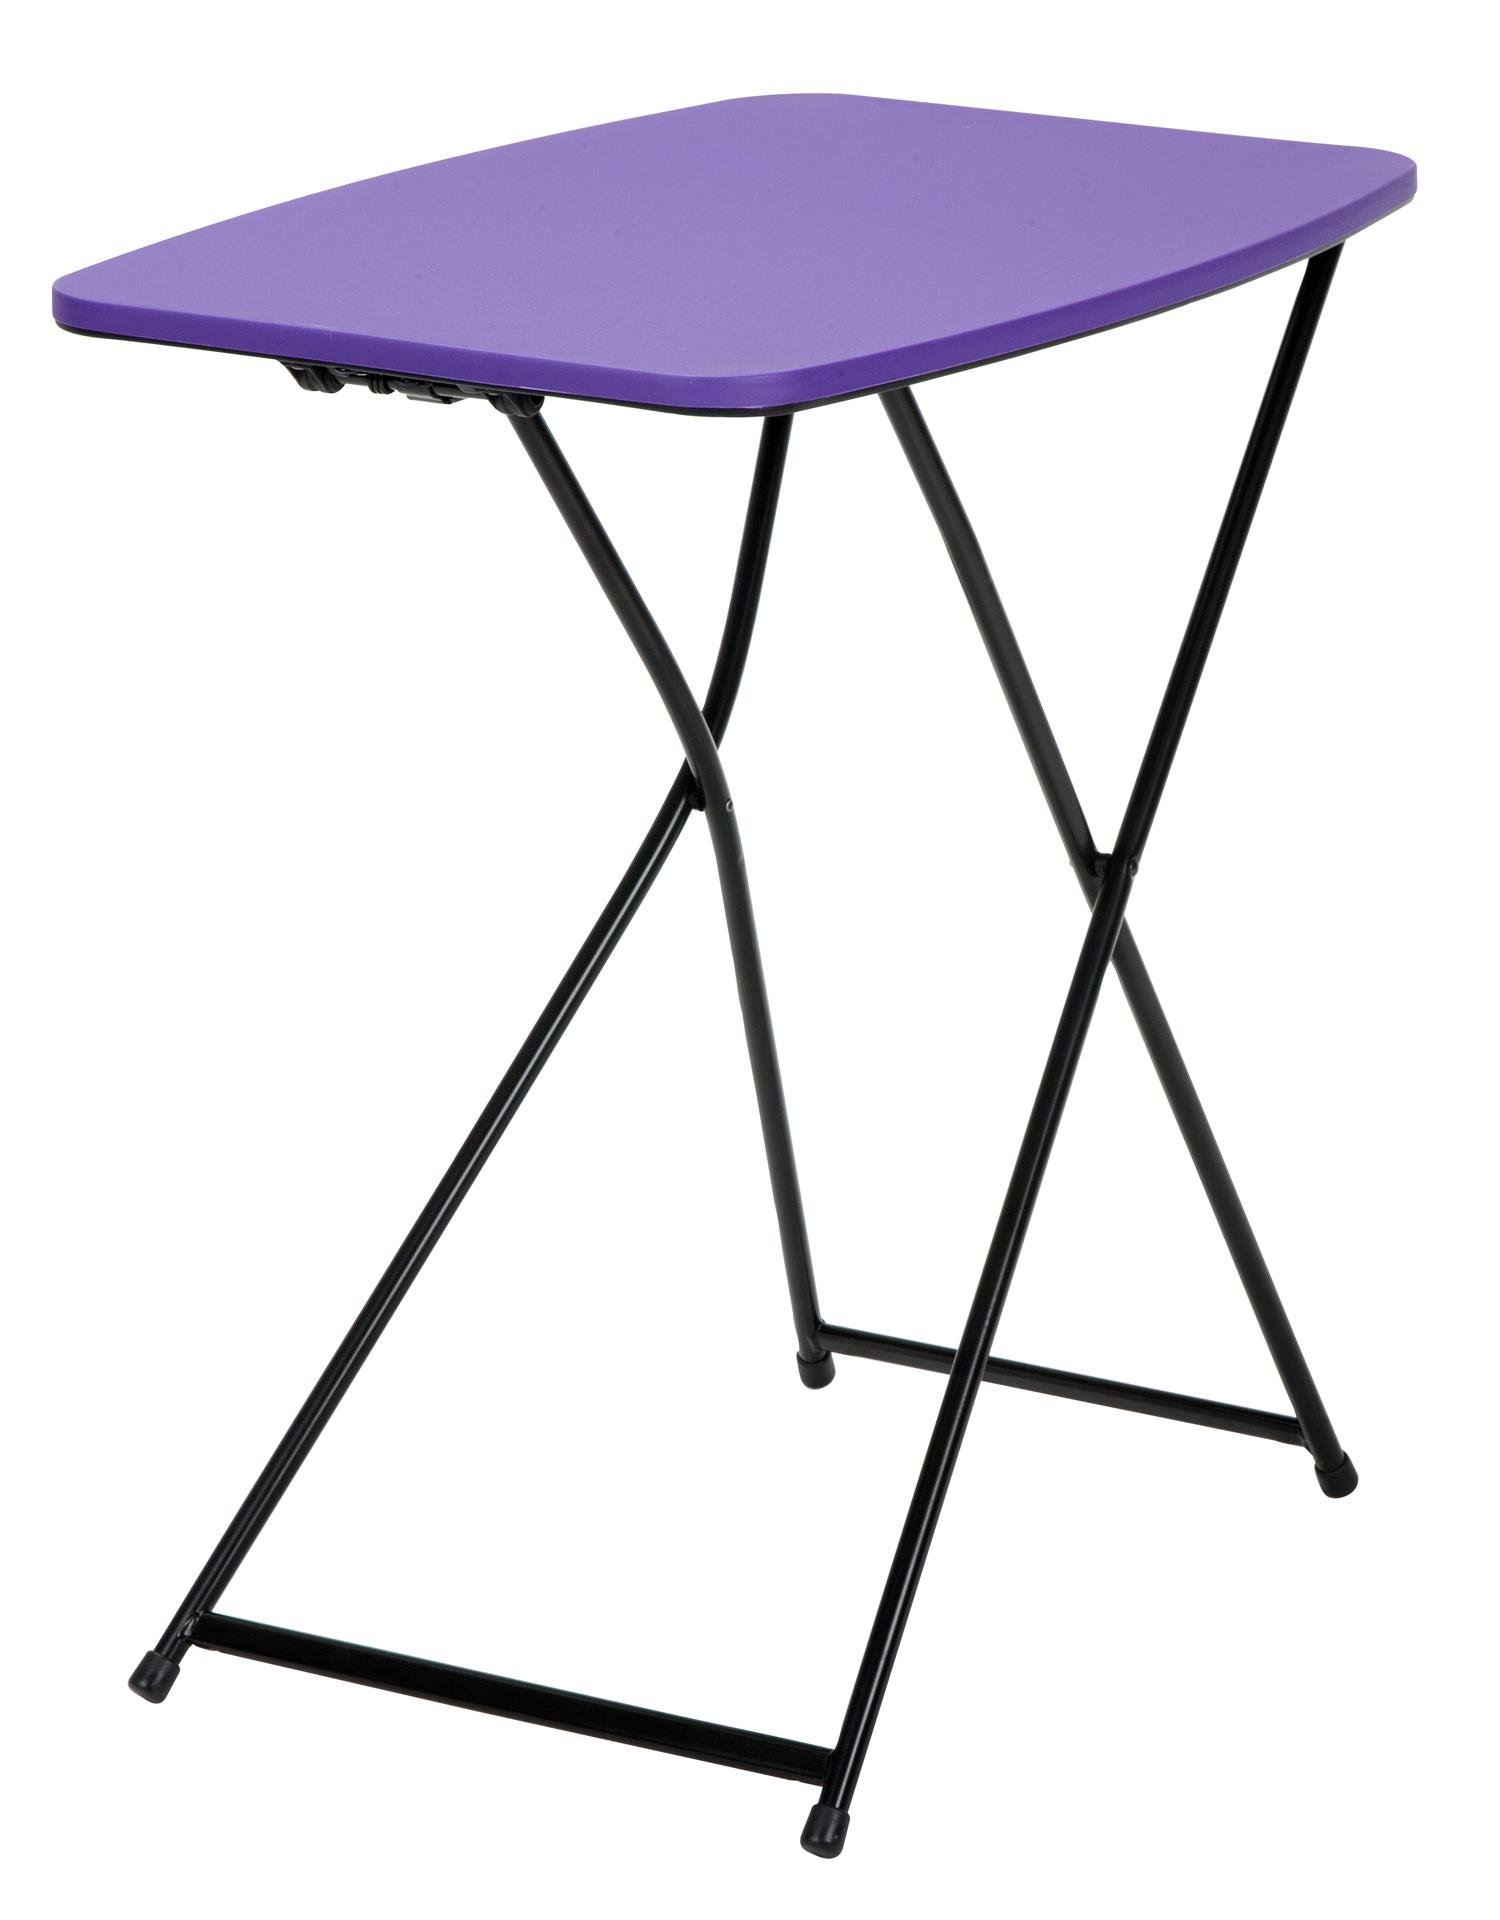 COSCO 18'' x 26'' Indoor Outdoor Adjustable Height Personal Folding Tailgate Table, Purple, 2-pack